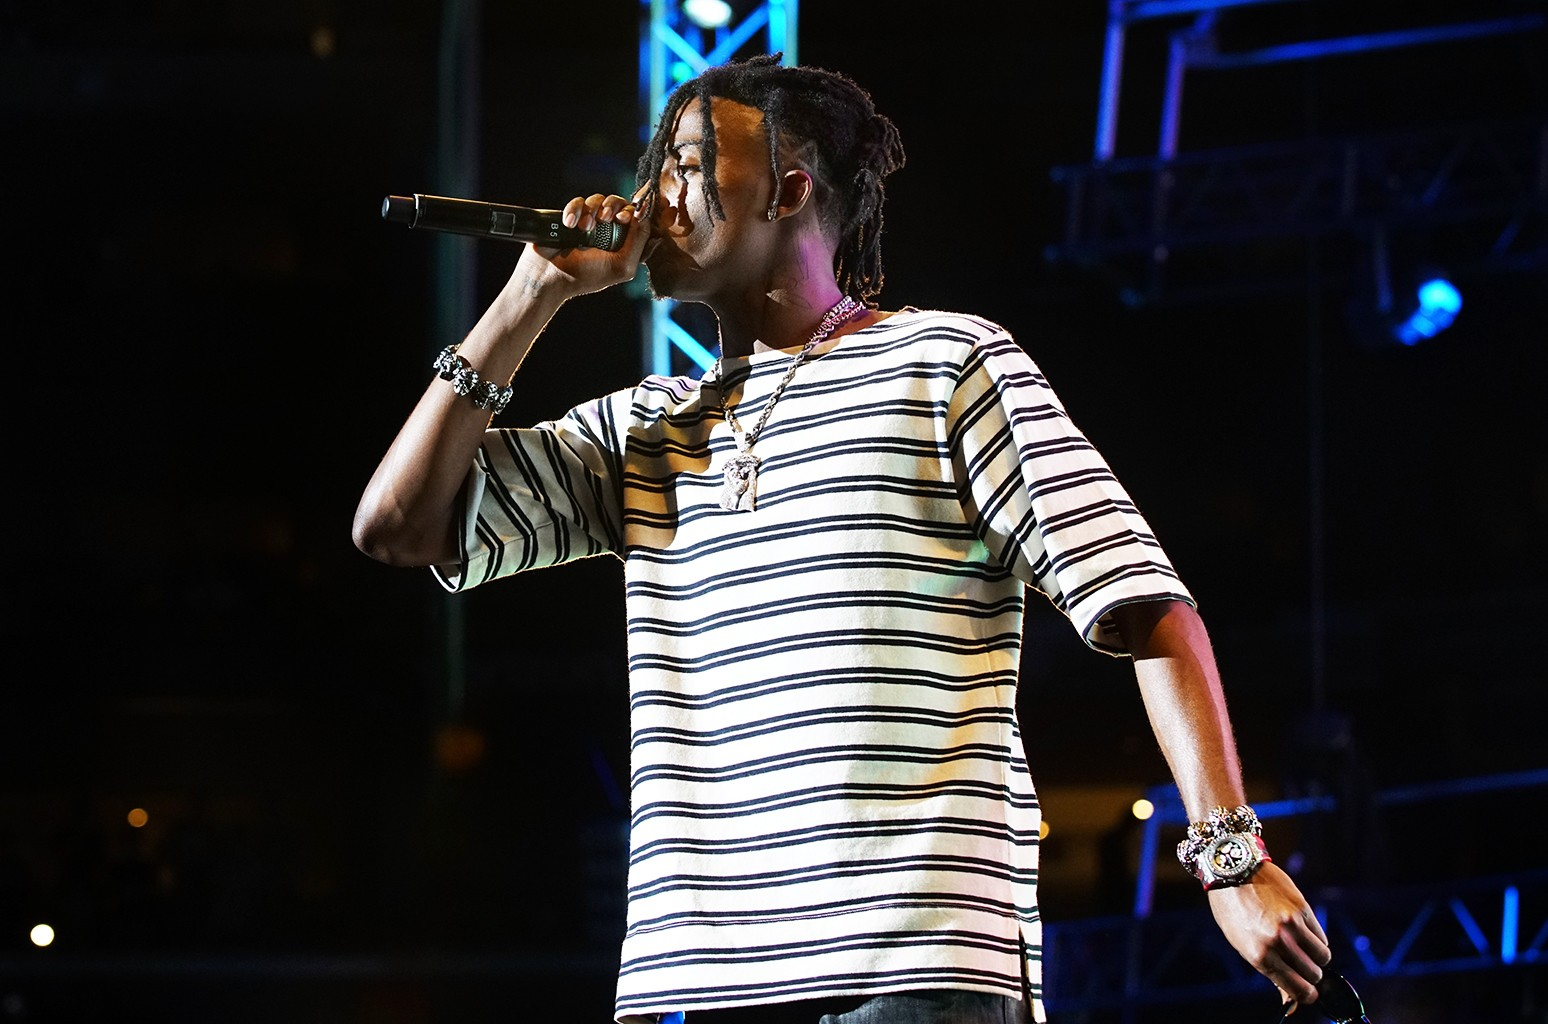 Playboi Carti performs onstage at night one of the 2017 BET Experience Staples Center Concert, sponsored by Hulu, at Staples Center on June 22, 2017 in Los Angeles.